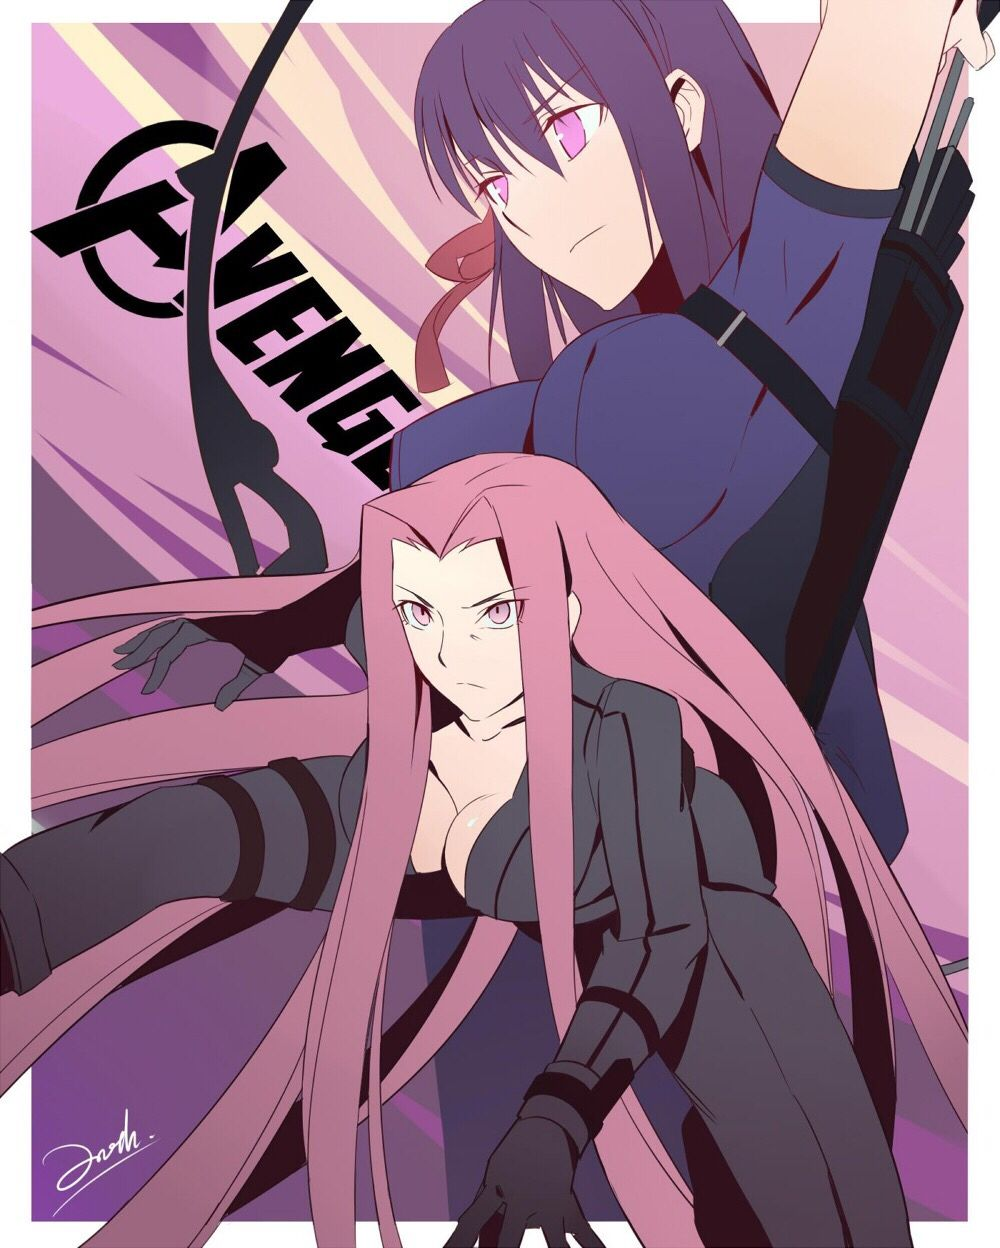 Fate Avengers Crossover Fate Stay Night Crossover Anime Crossover Marvel Fate ingens cor (crossover with harry fate/stay night: fate avengers crossover fate stay